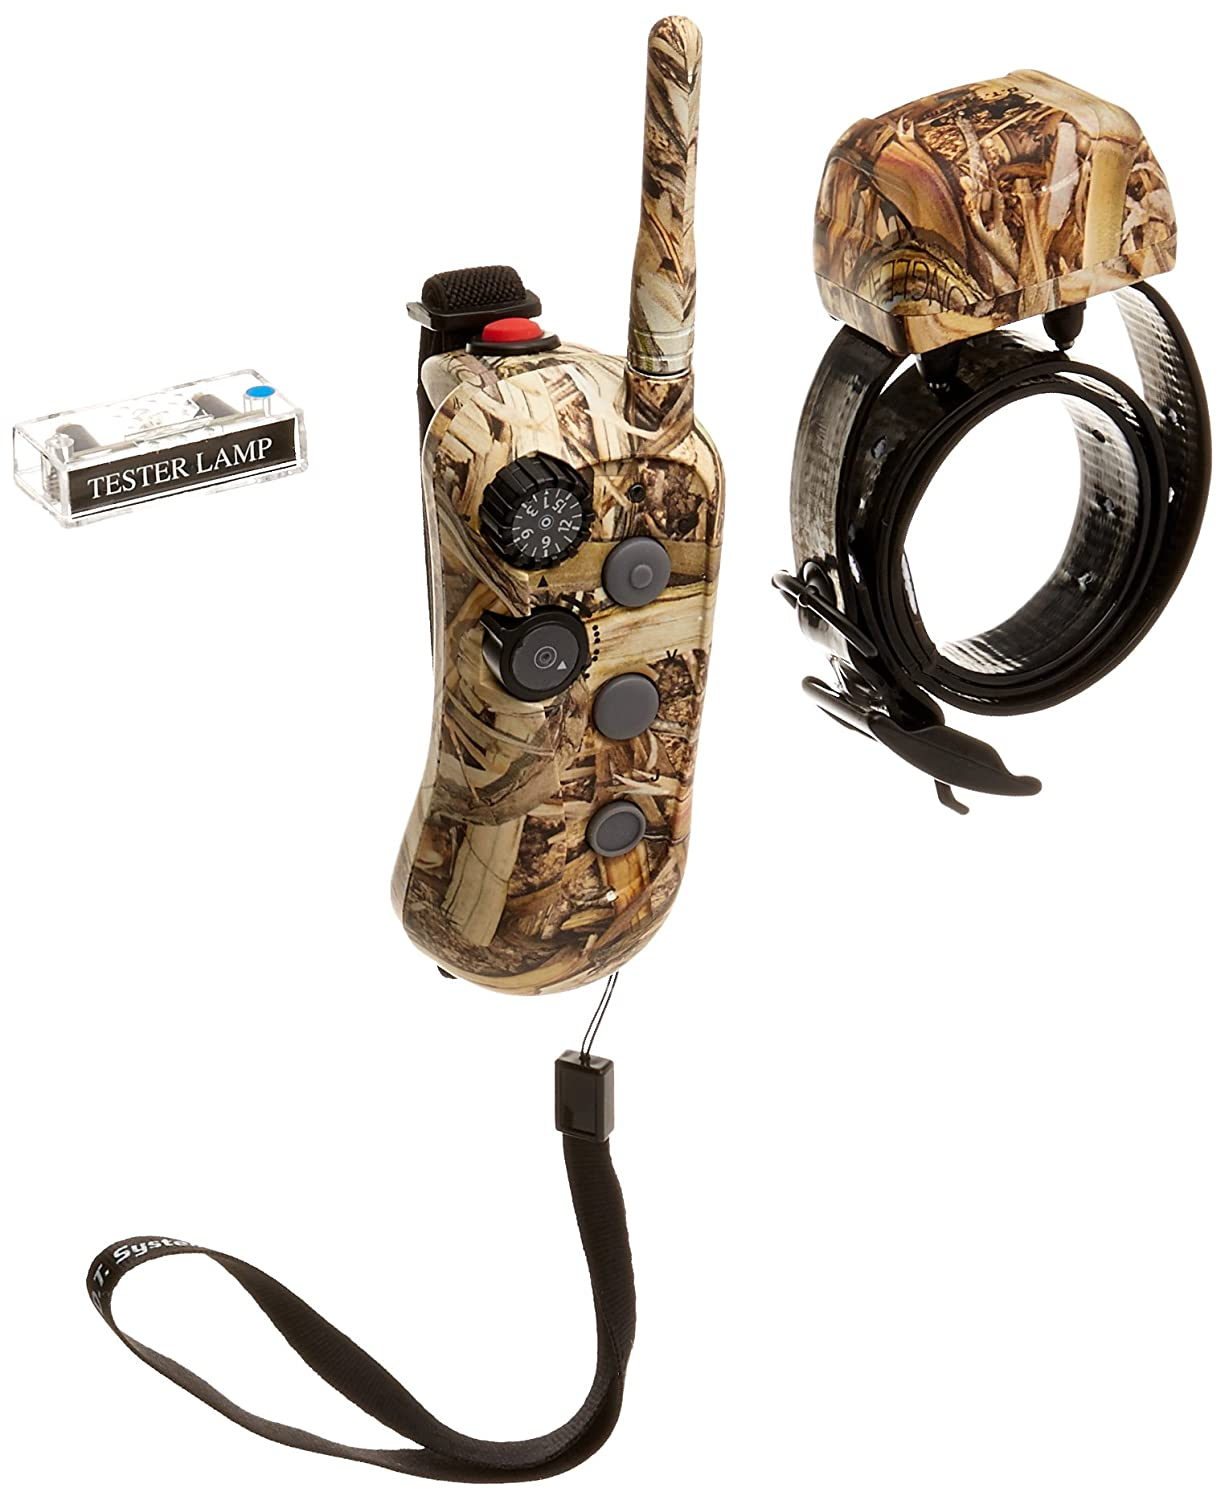 DT Systems R.A.P.T 1400 Remote Cover Up Camo Control Dog Training Collar System